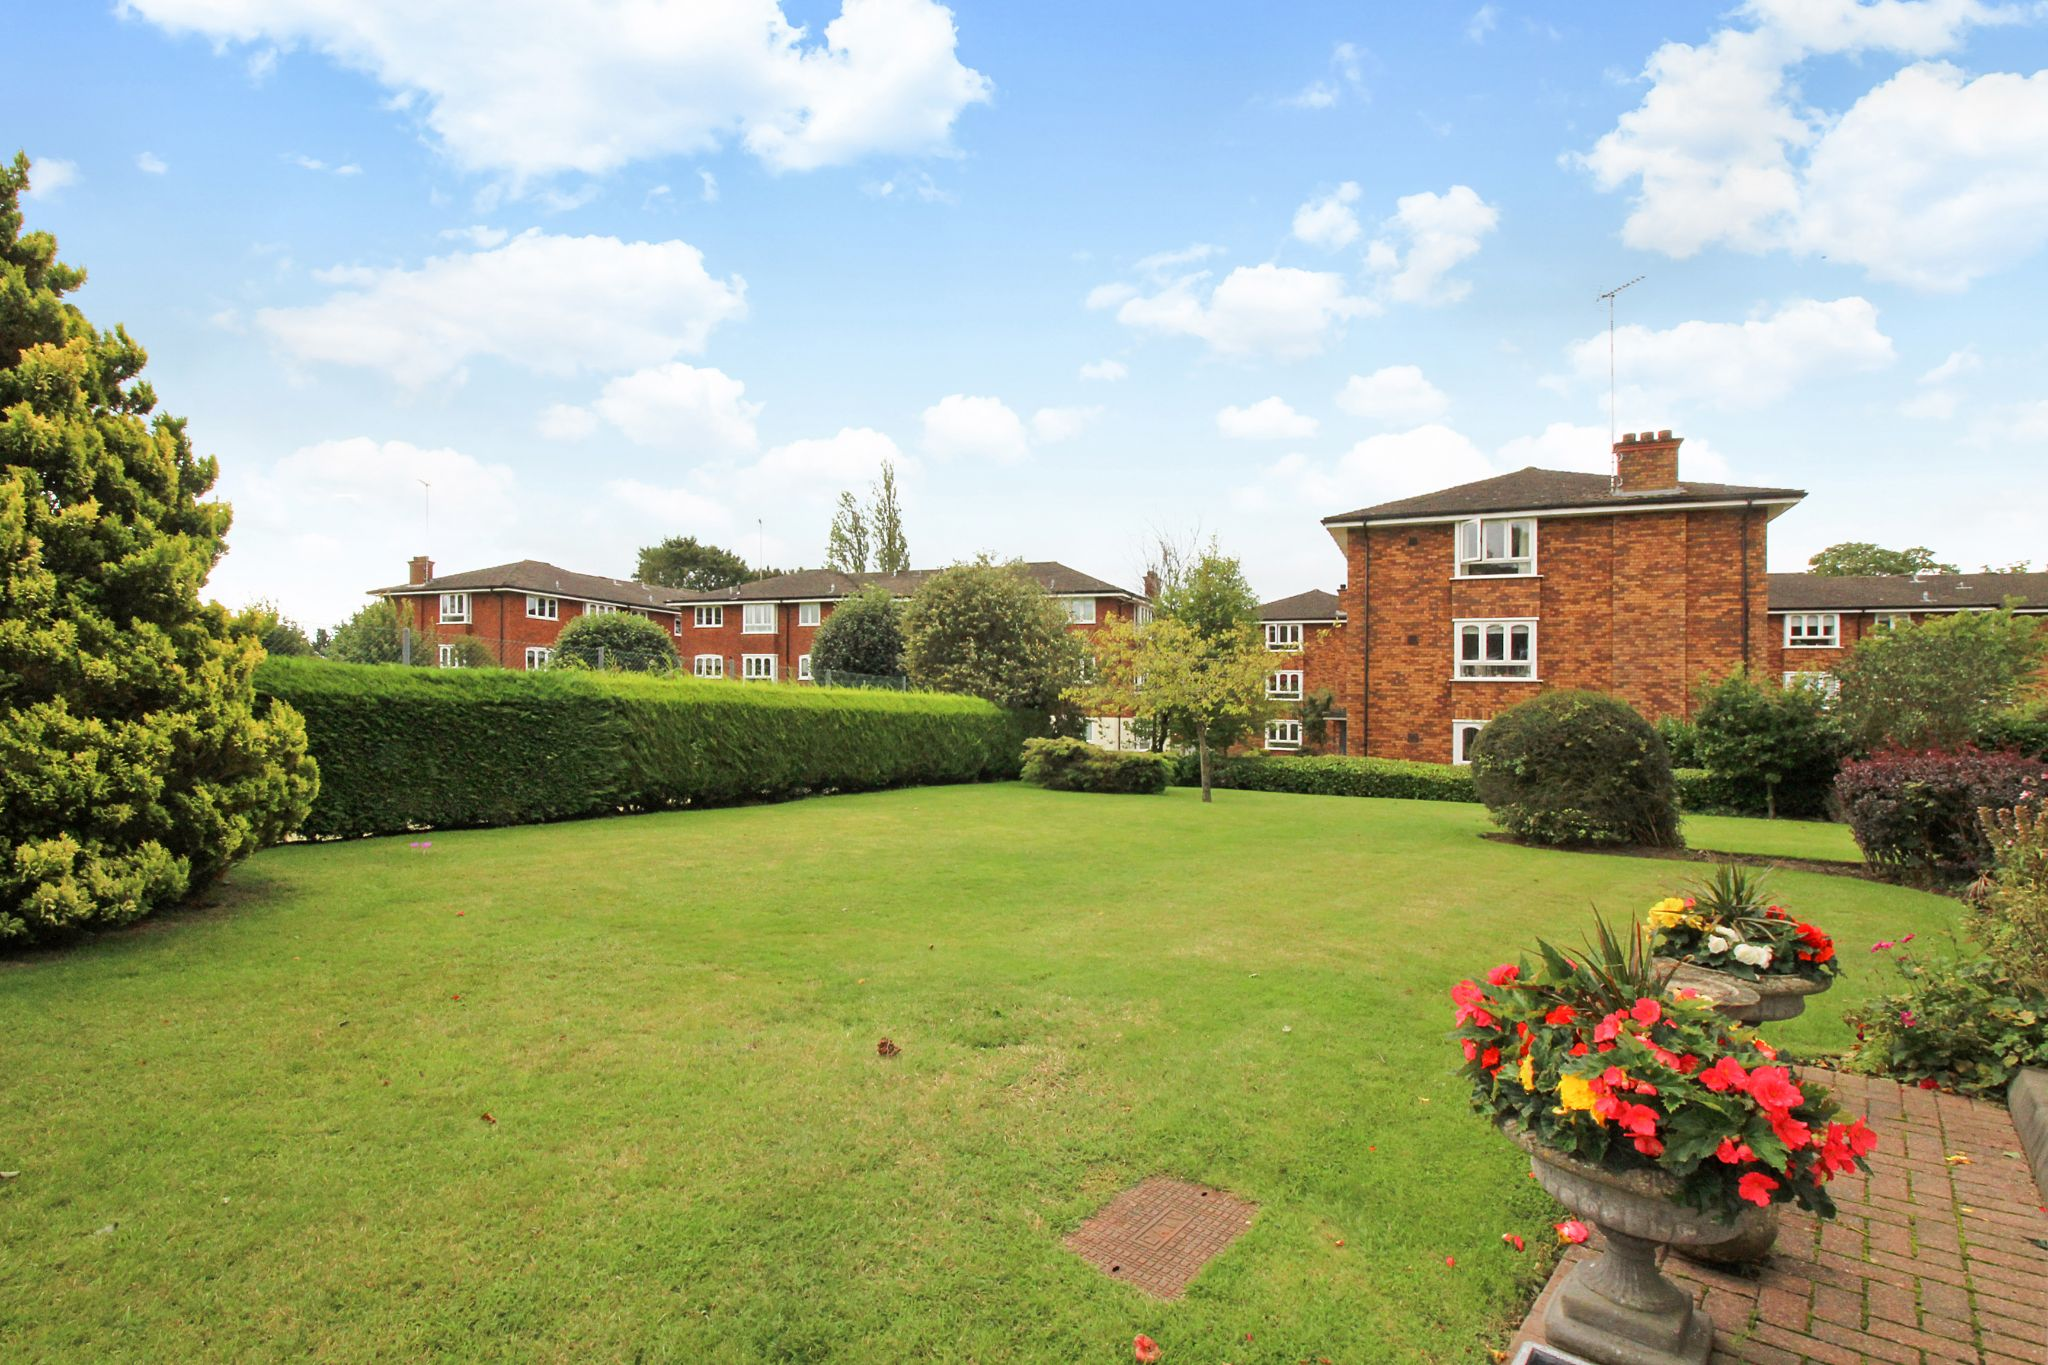 2 bedroom ground floor flat/apartment For Sale in Solihull - Photograph 13.